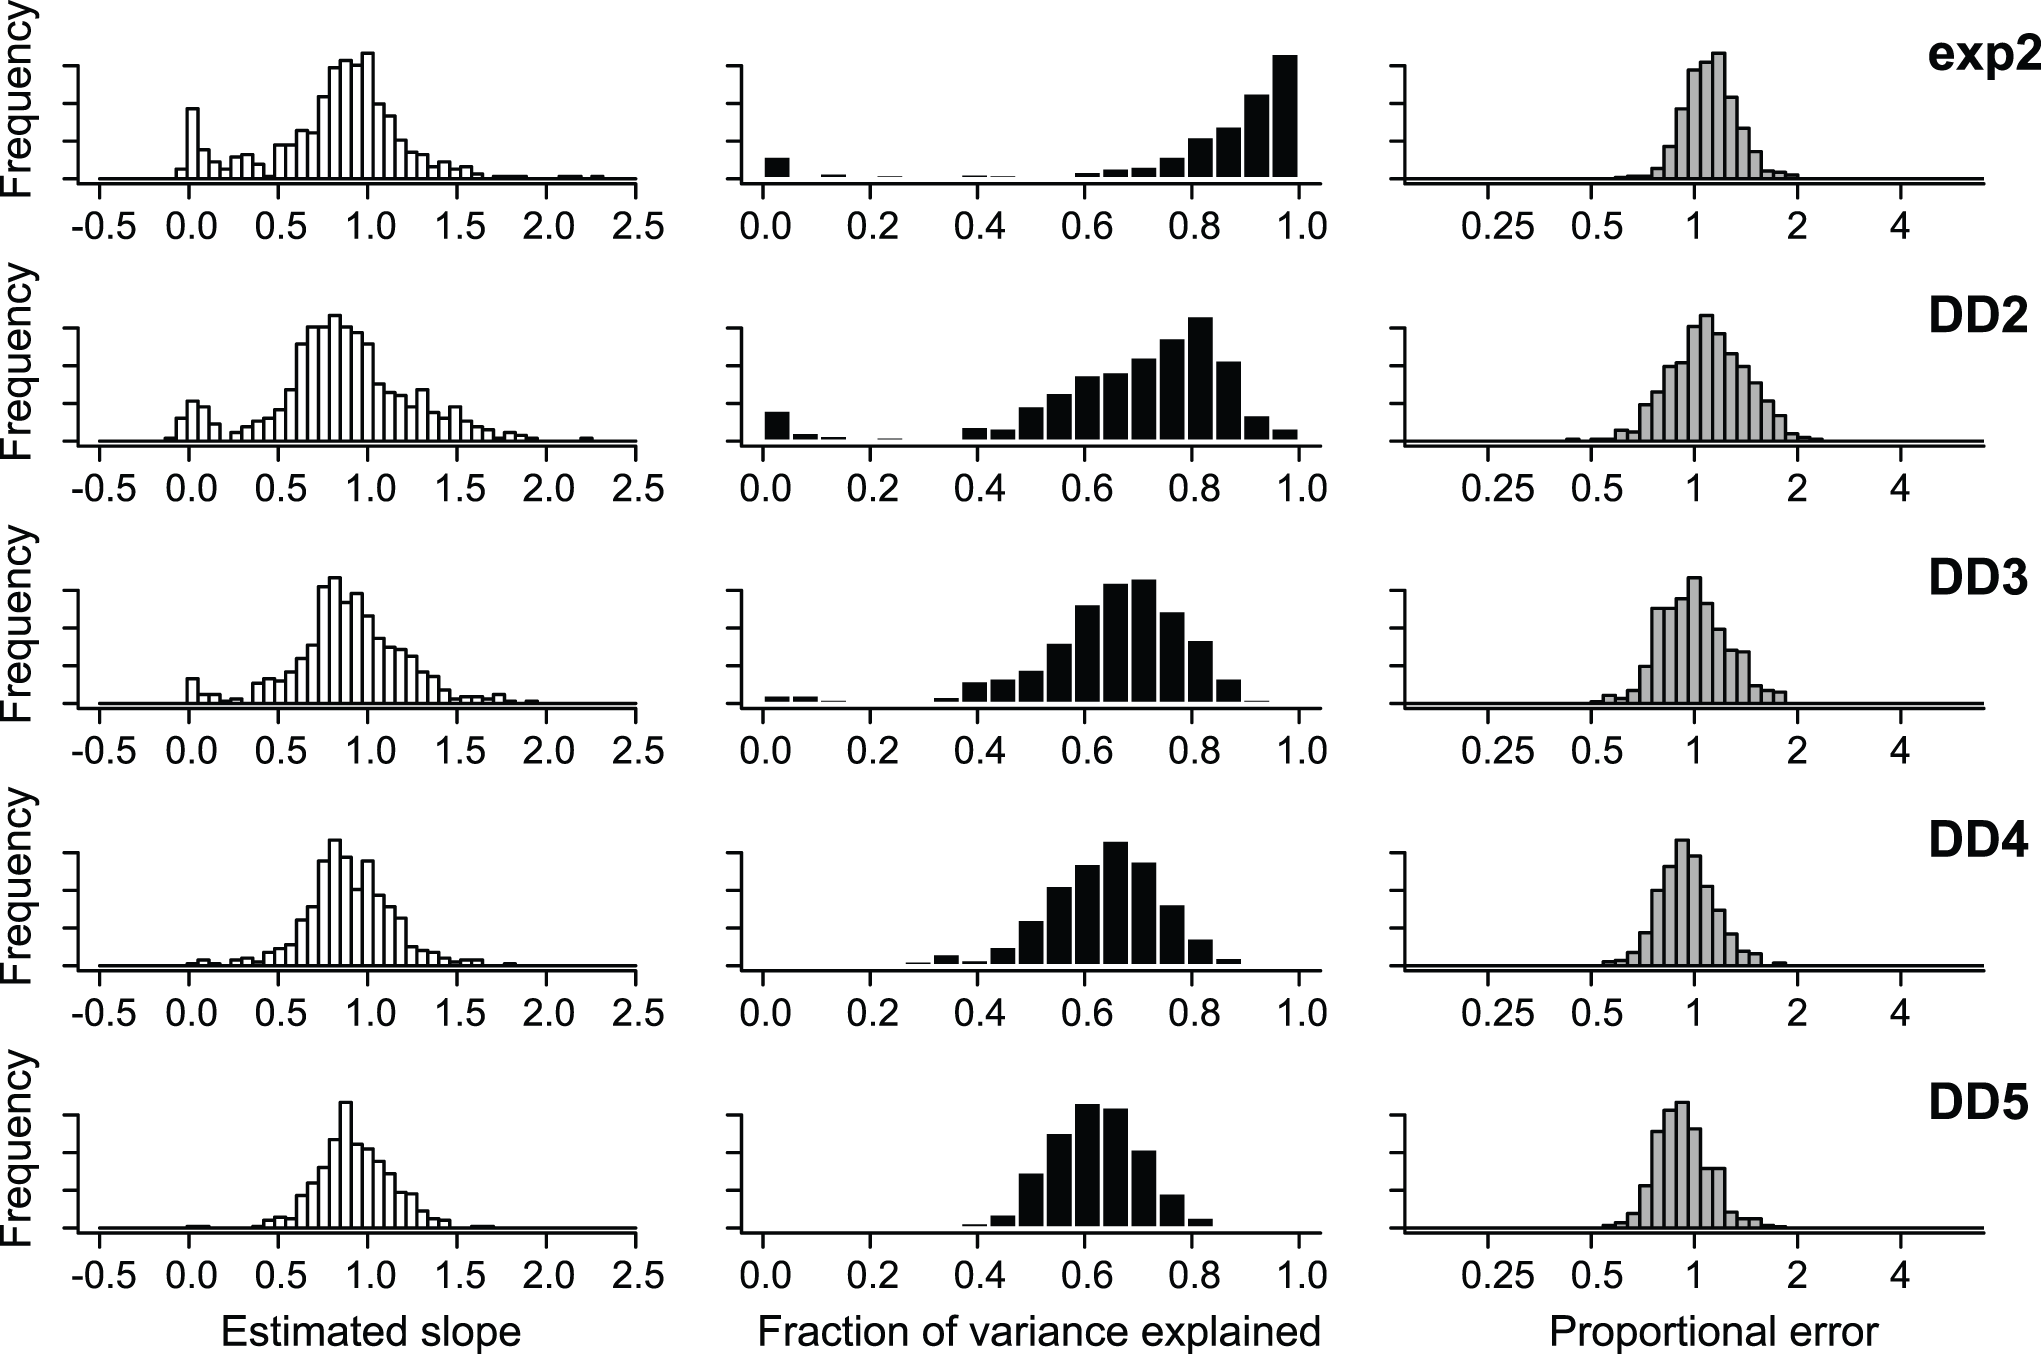 Figure 1. Precision and bias of branch-specific speciation-rate estimates using BAMM (this is Figure 6 reproduced from Rabosky, 2014). Rabosky (2014) simulated 500 trees for each of five alternative scenarios where rates vary across branches (rows). For each scenario, he estimated the relationship between the estimated branch-specific rates and their corresponding true values by fitting a linear model to each simulated tree, using the true branch-specific speciation rate as predictor variable and the estimated branch-specific speciation rate as the response variable, and then summarized the set of 500 slopes for each simulation scenario as a histogram (left column).  He also estimated the mean proportional error in the branch-specific speciation-rate estimates for each tree, and generated histograms of the proportional error across all branches of all 500 trees (right column). Both of these histograms have a mean near 1, suggesting that the parameter estimates are relatively accurate and unbiased.